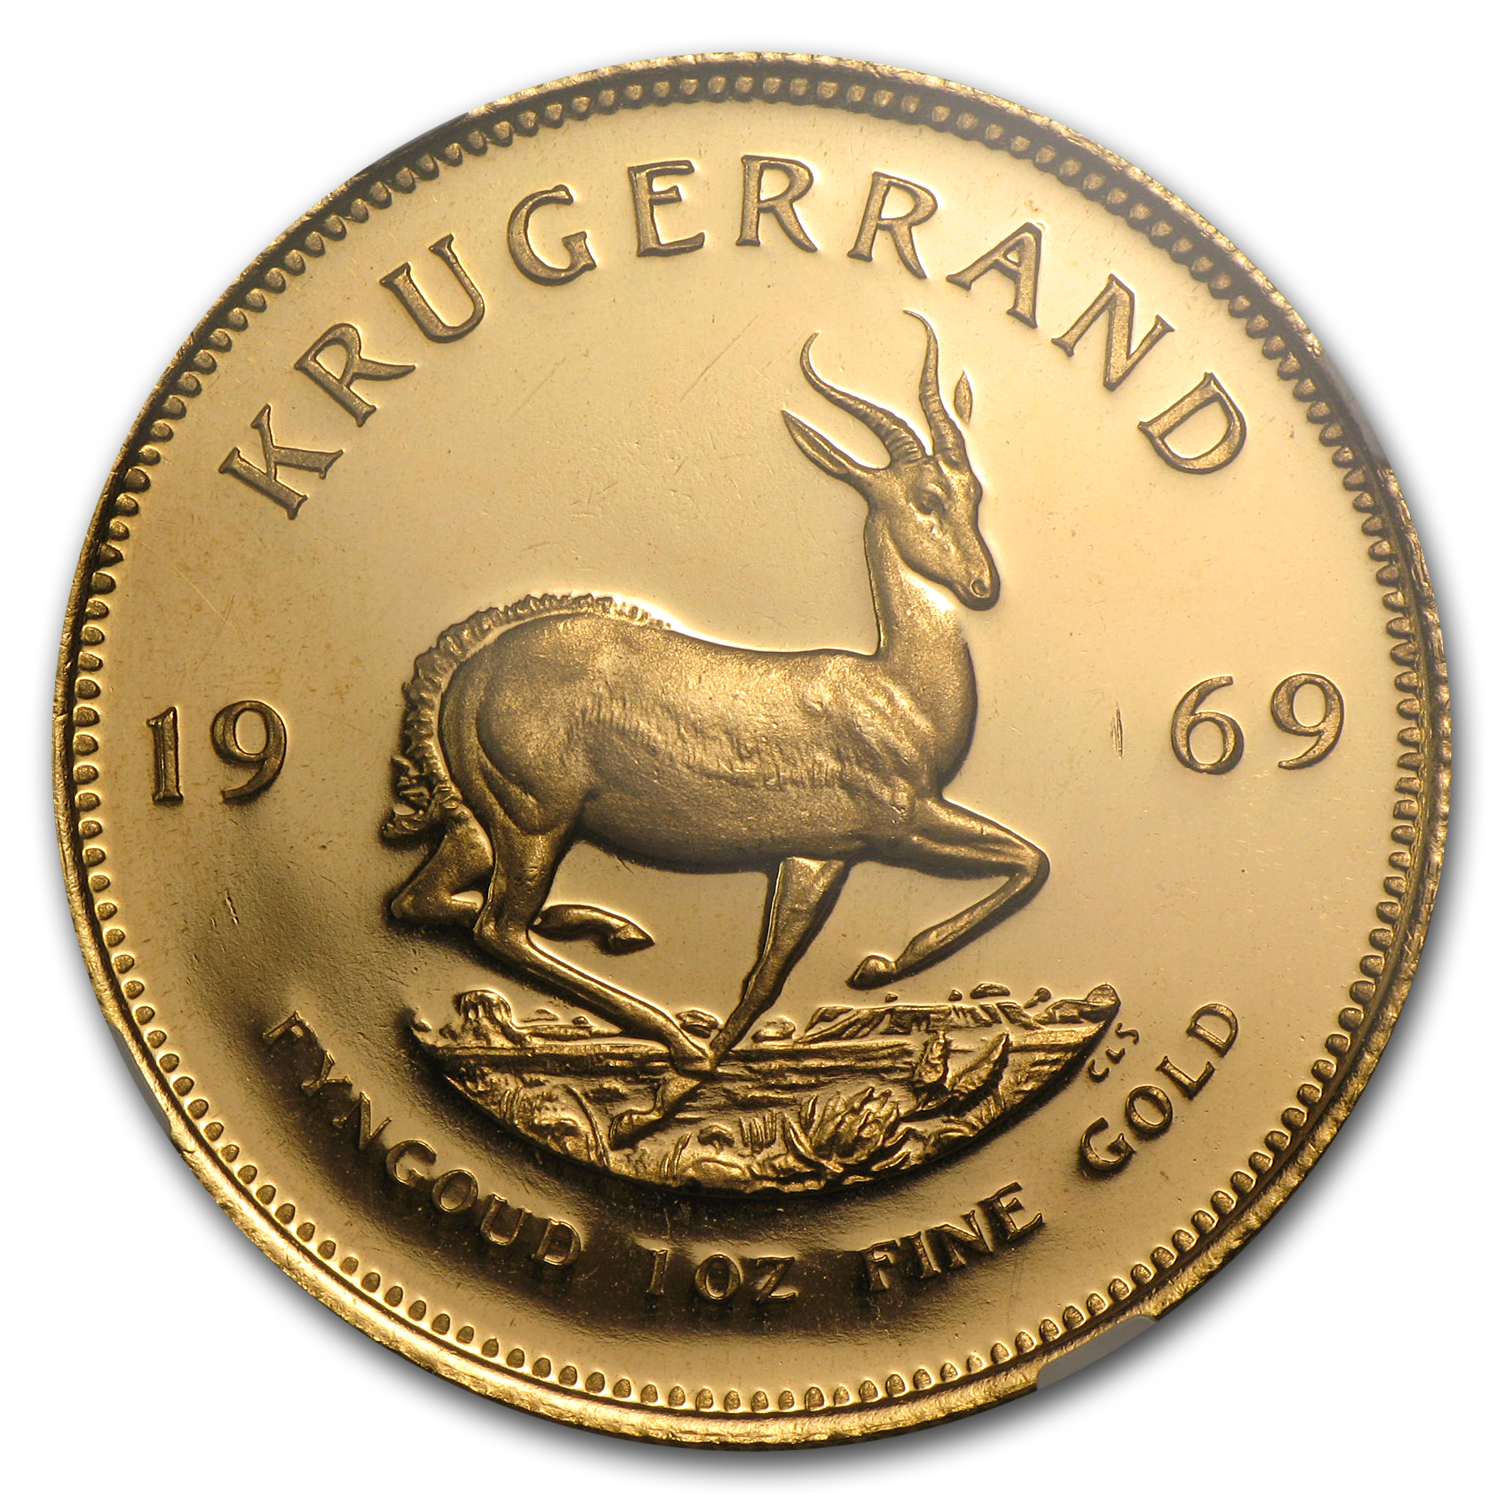 1969 South Africa 1 oz Gold Krugerrand PF-66 NGC